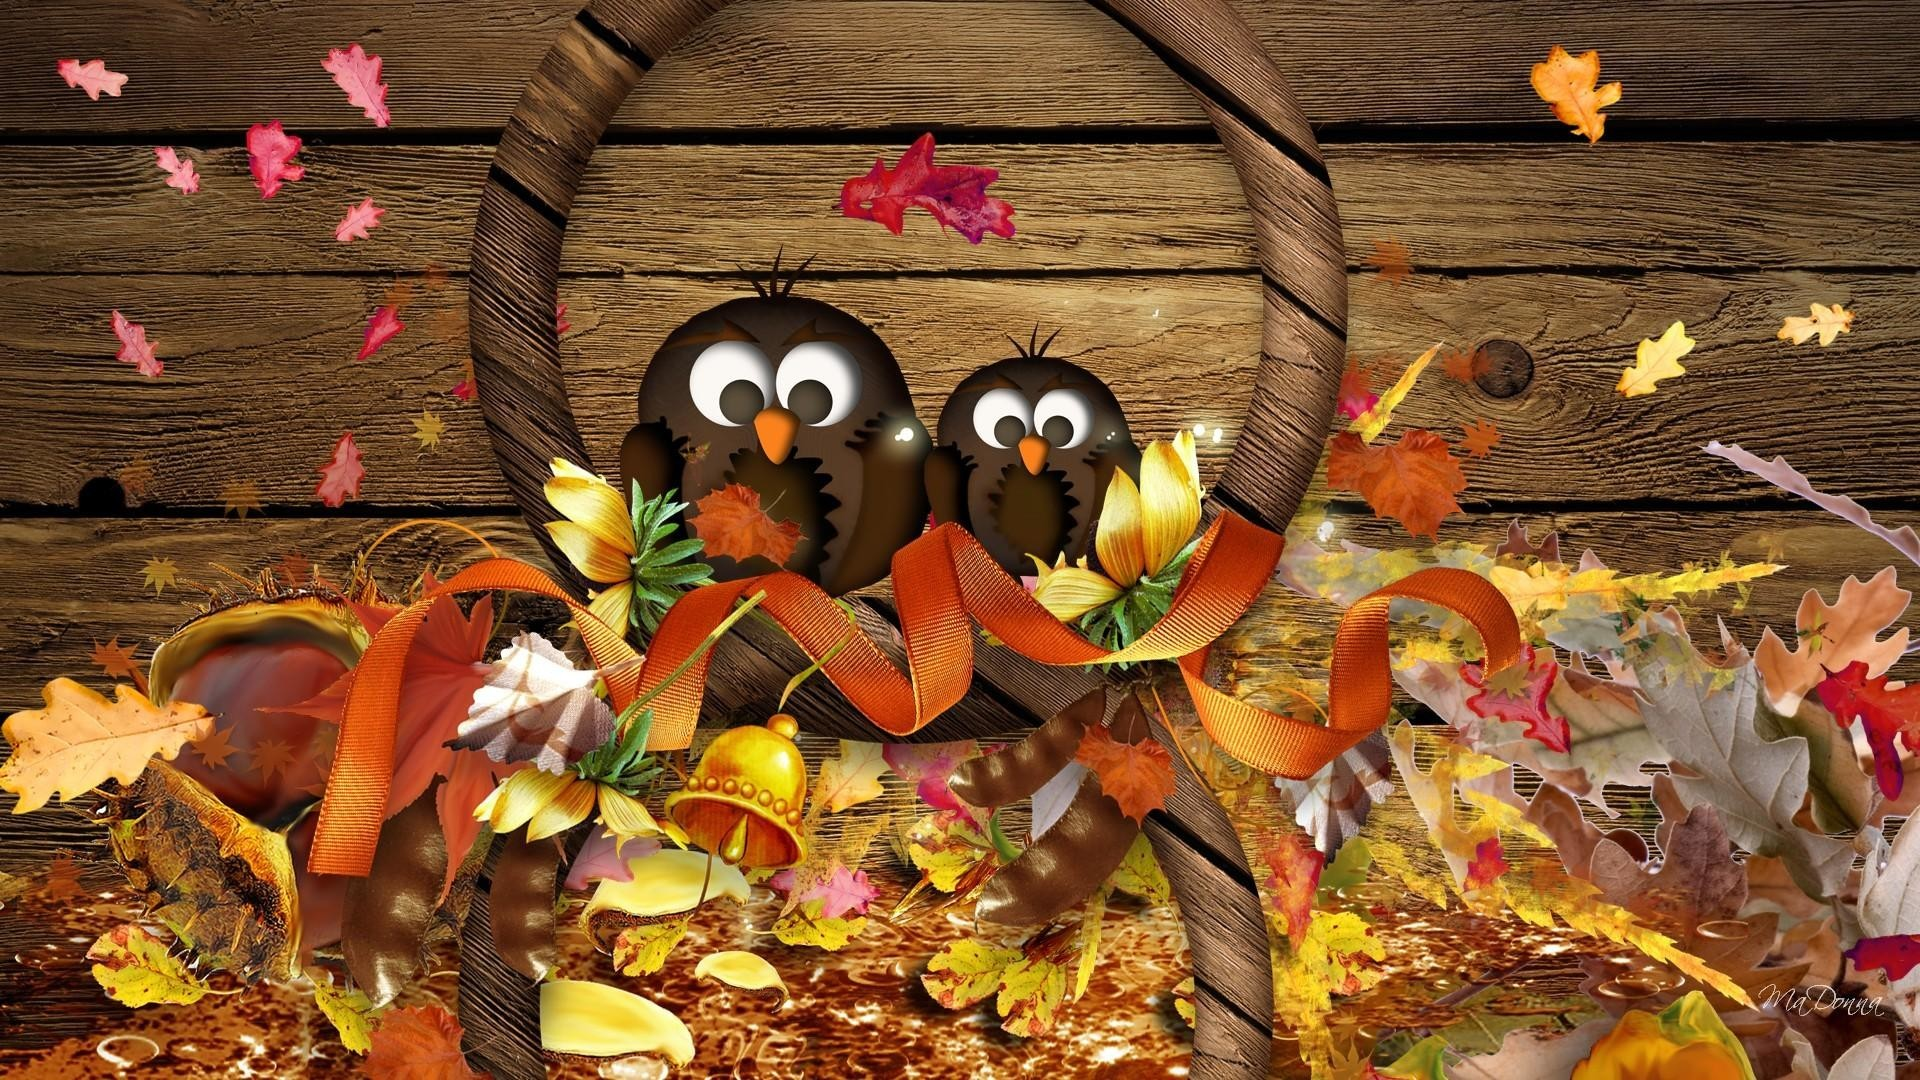 1920x1080  Cute Thanksgiving Screensavers | Thanksgiving HD Desktop  Wallpapers for…